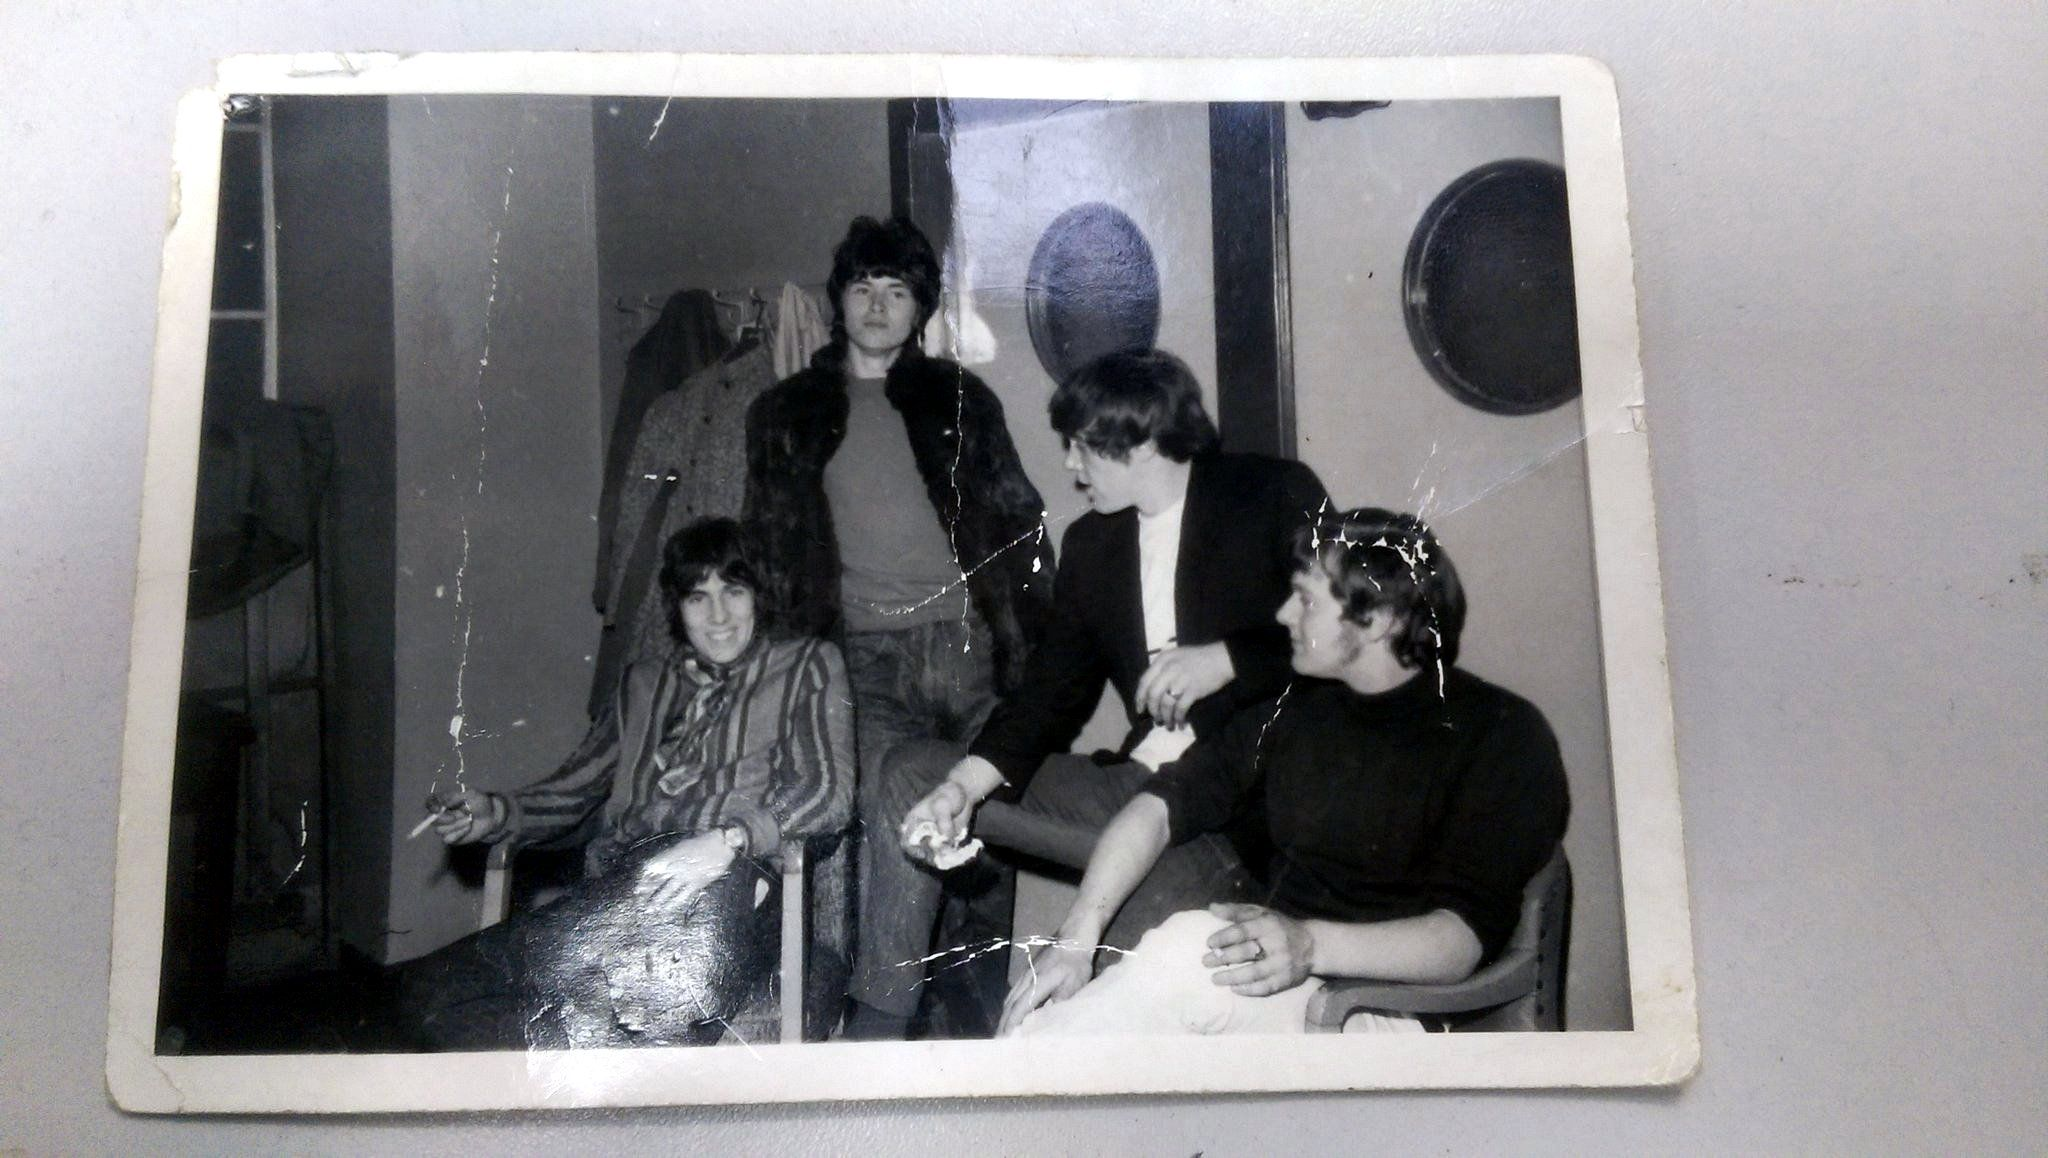 Yours truly second from the left... Age ? 16